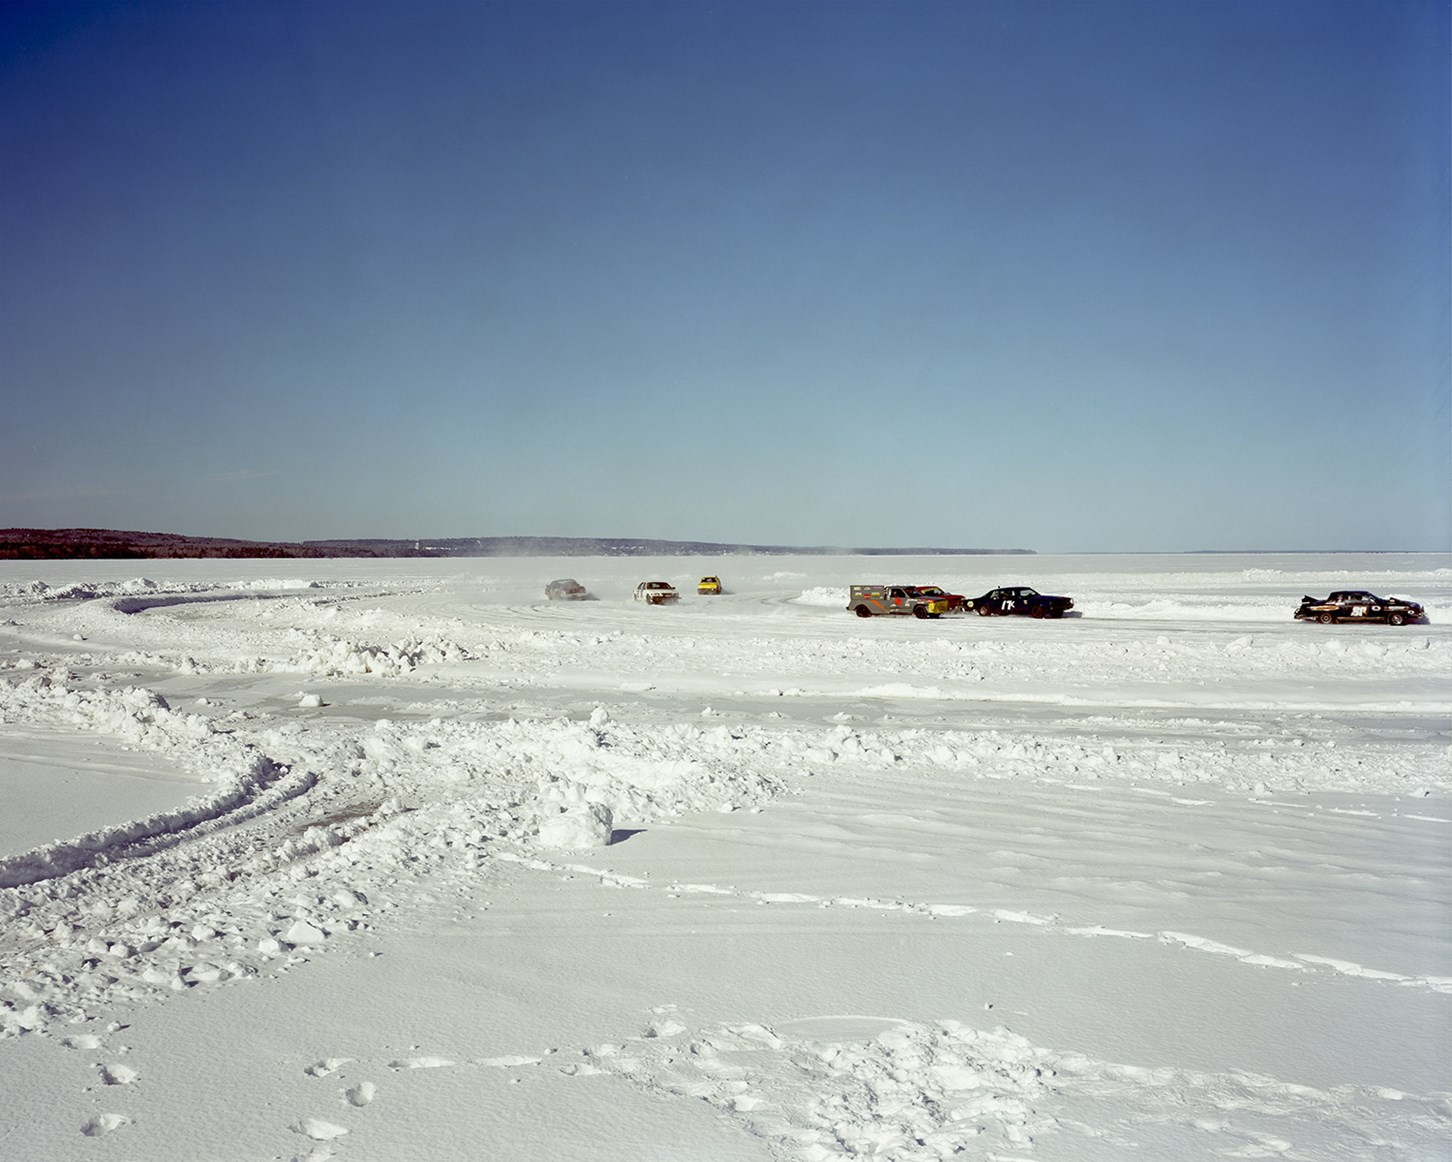 Ice Racing On Chequamegon Bay, Ashland, Wisconsin, March 2013